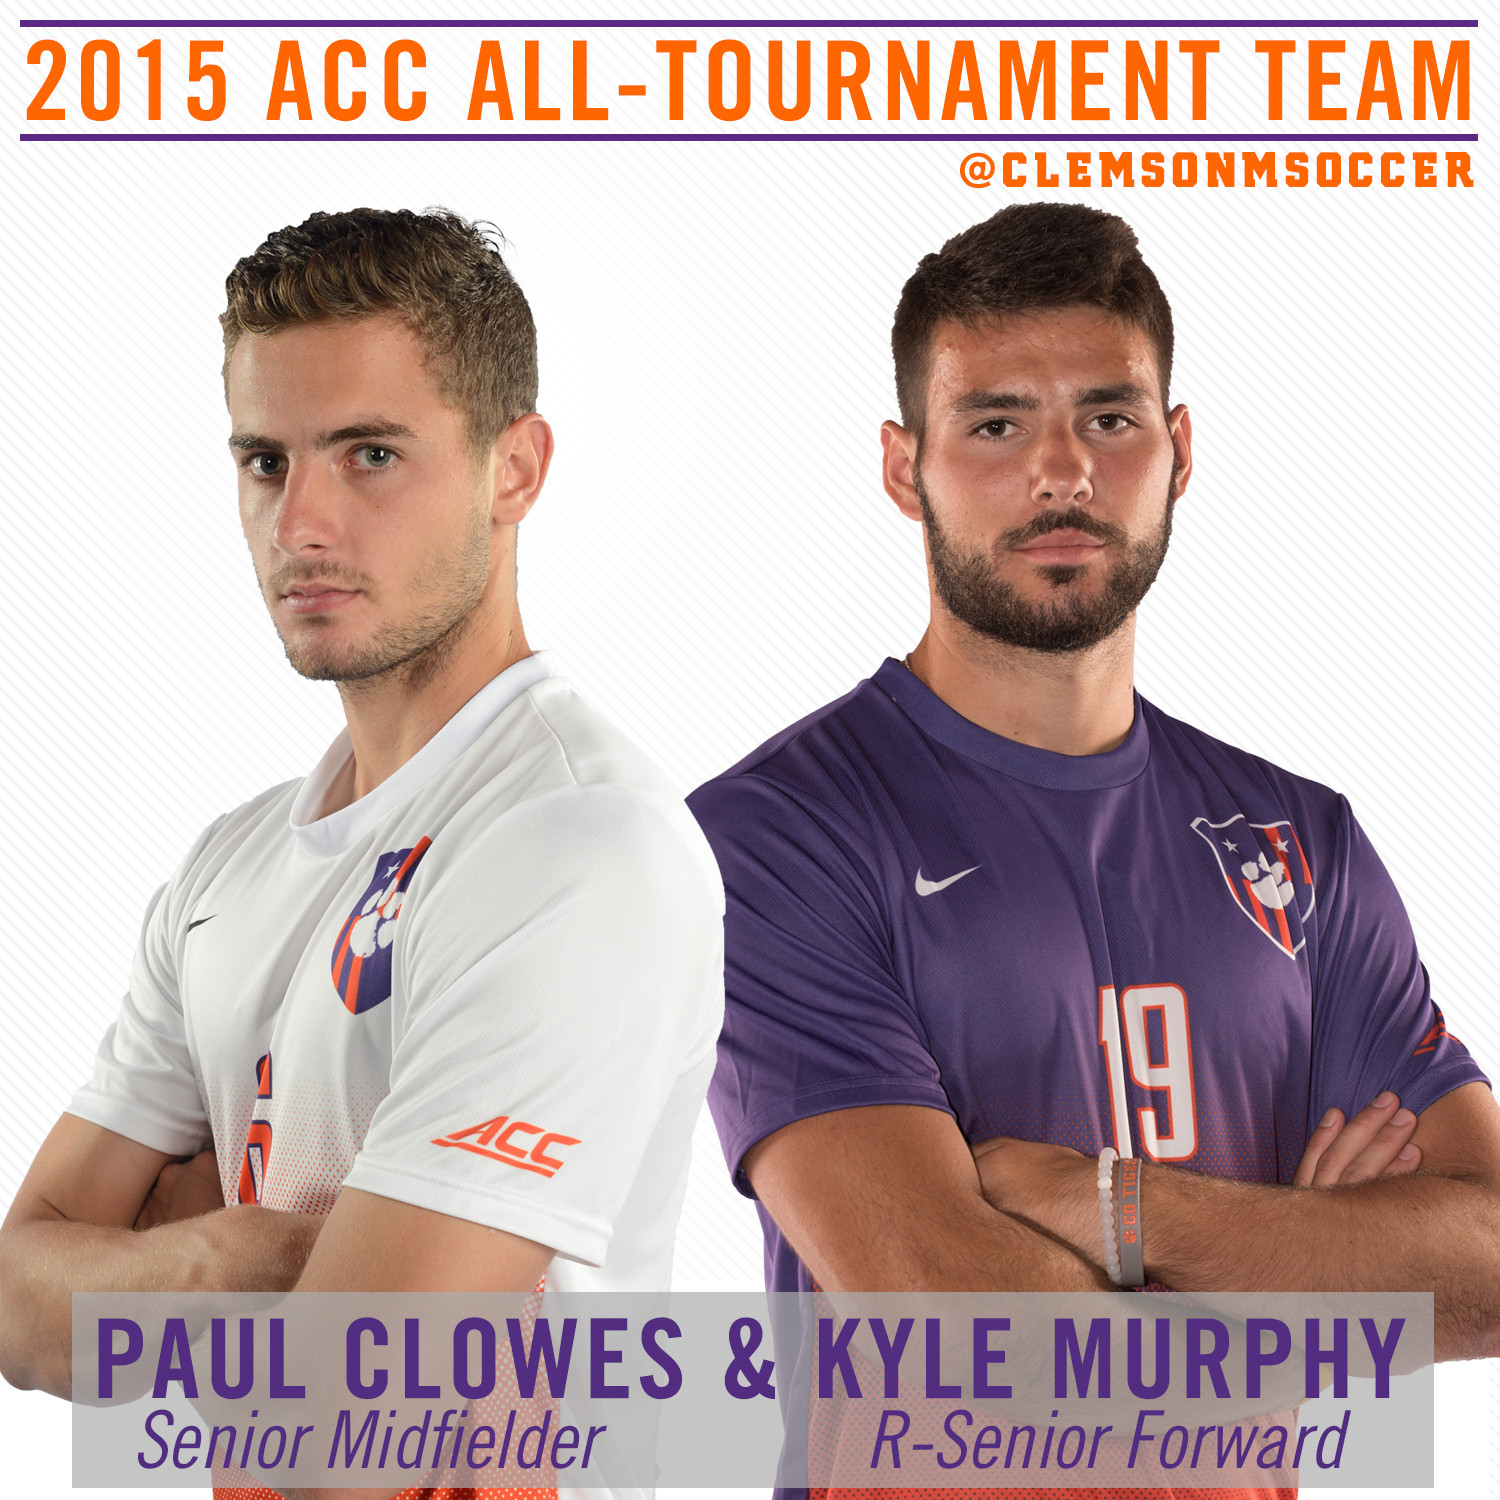 Clowes & Murphy Named to 2015 ACC All-Tournament Team